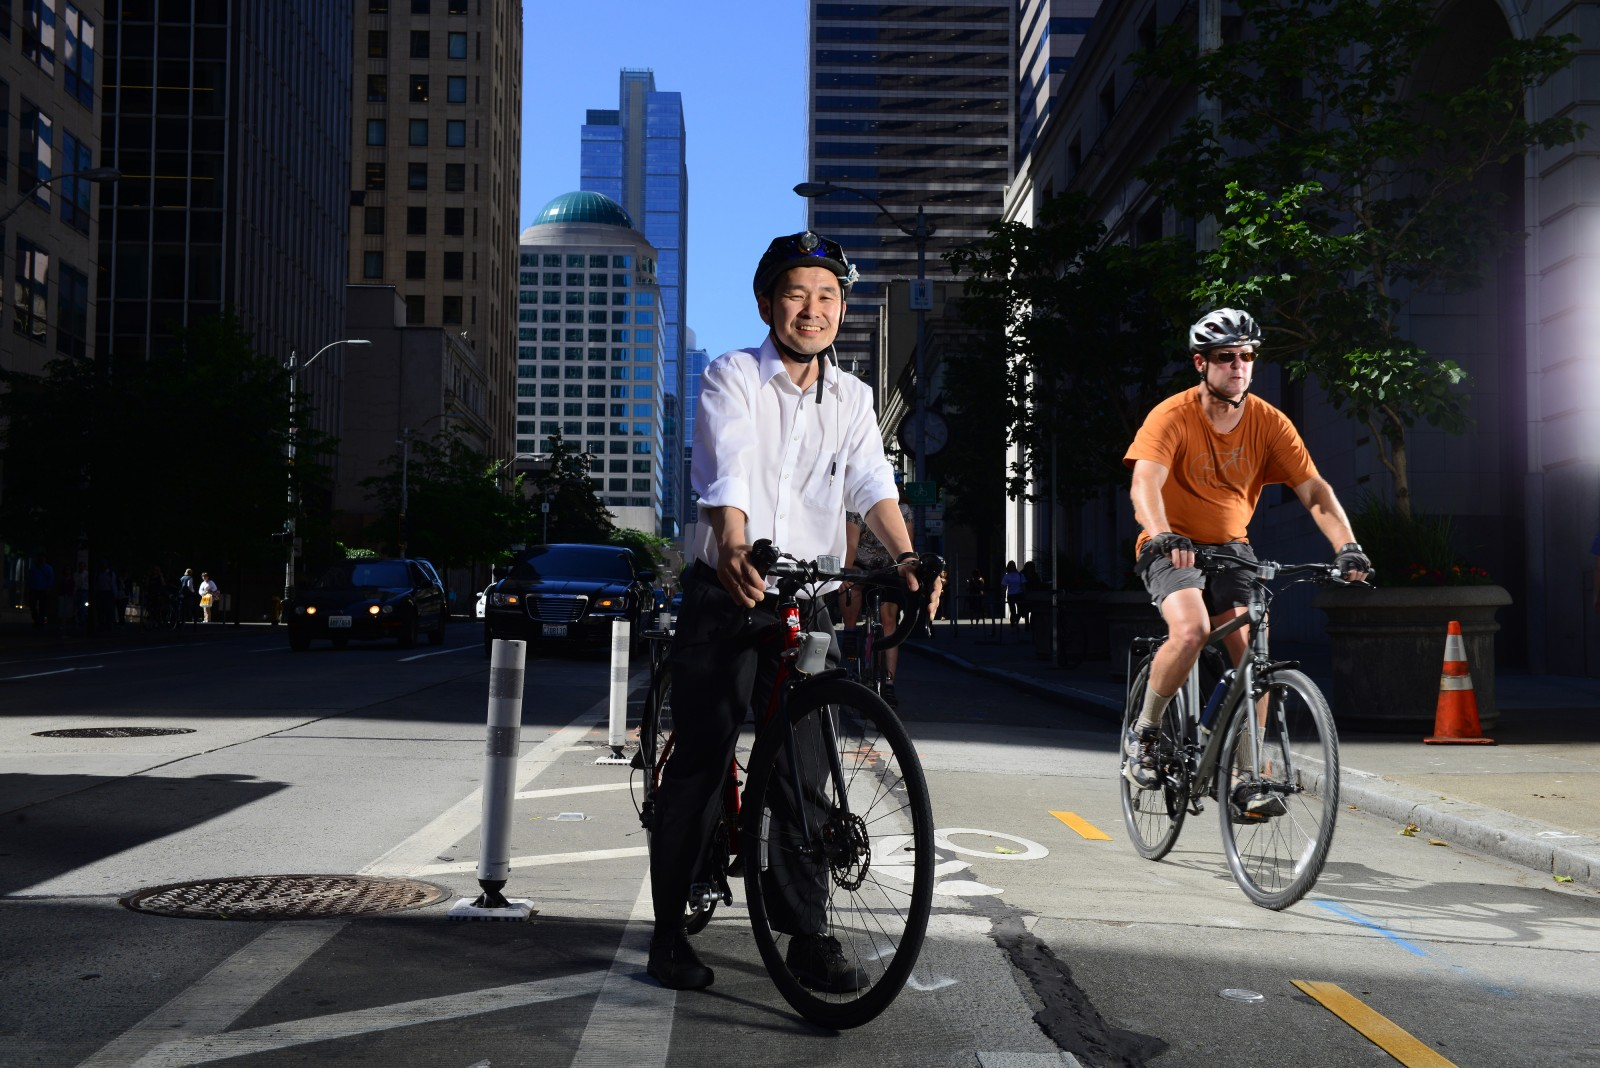 Streets Experiments Made This City Engineer a Celebrity Bureaucrat